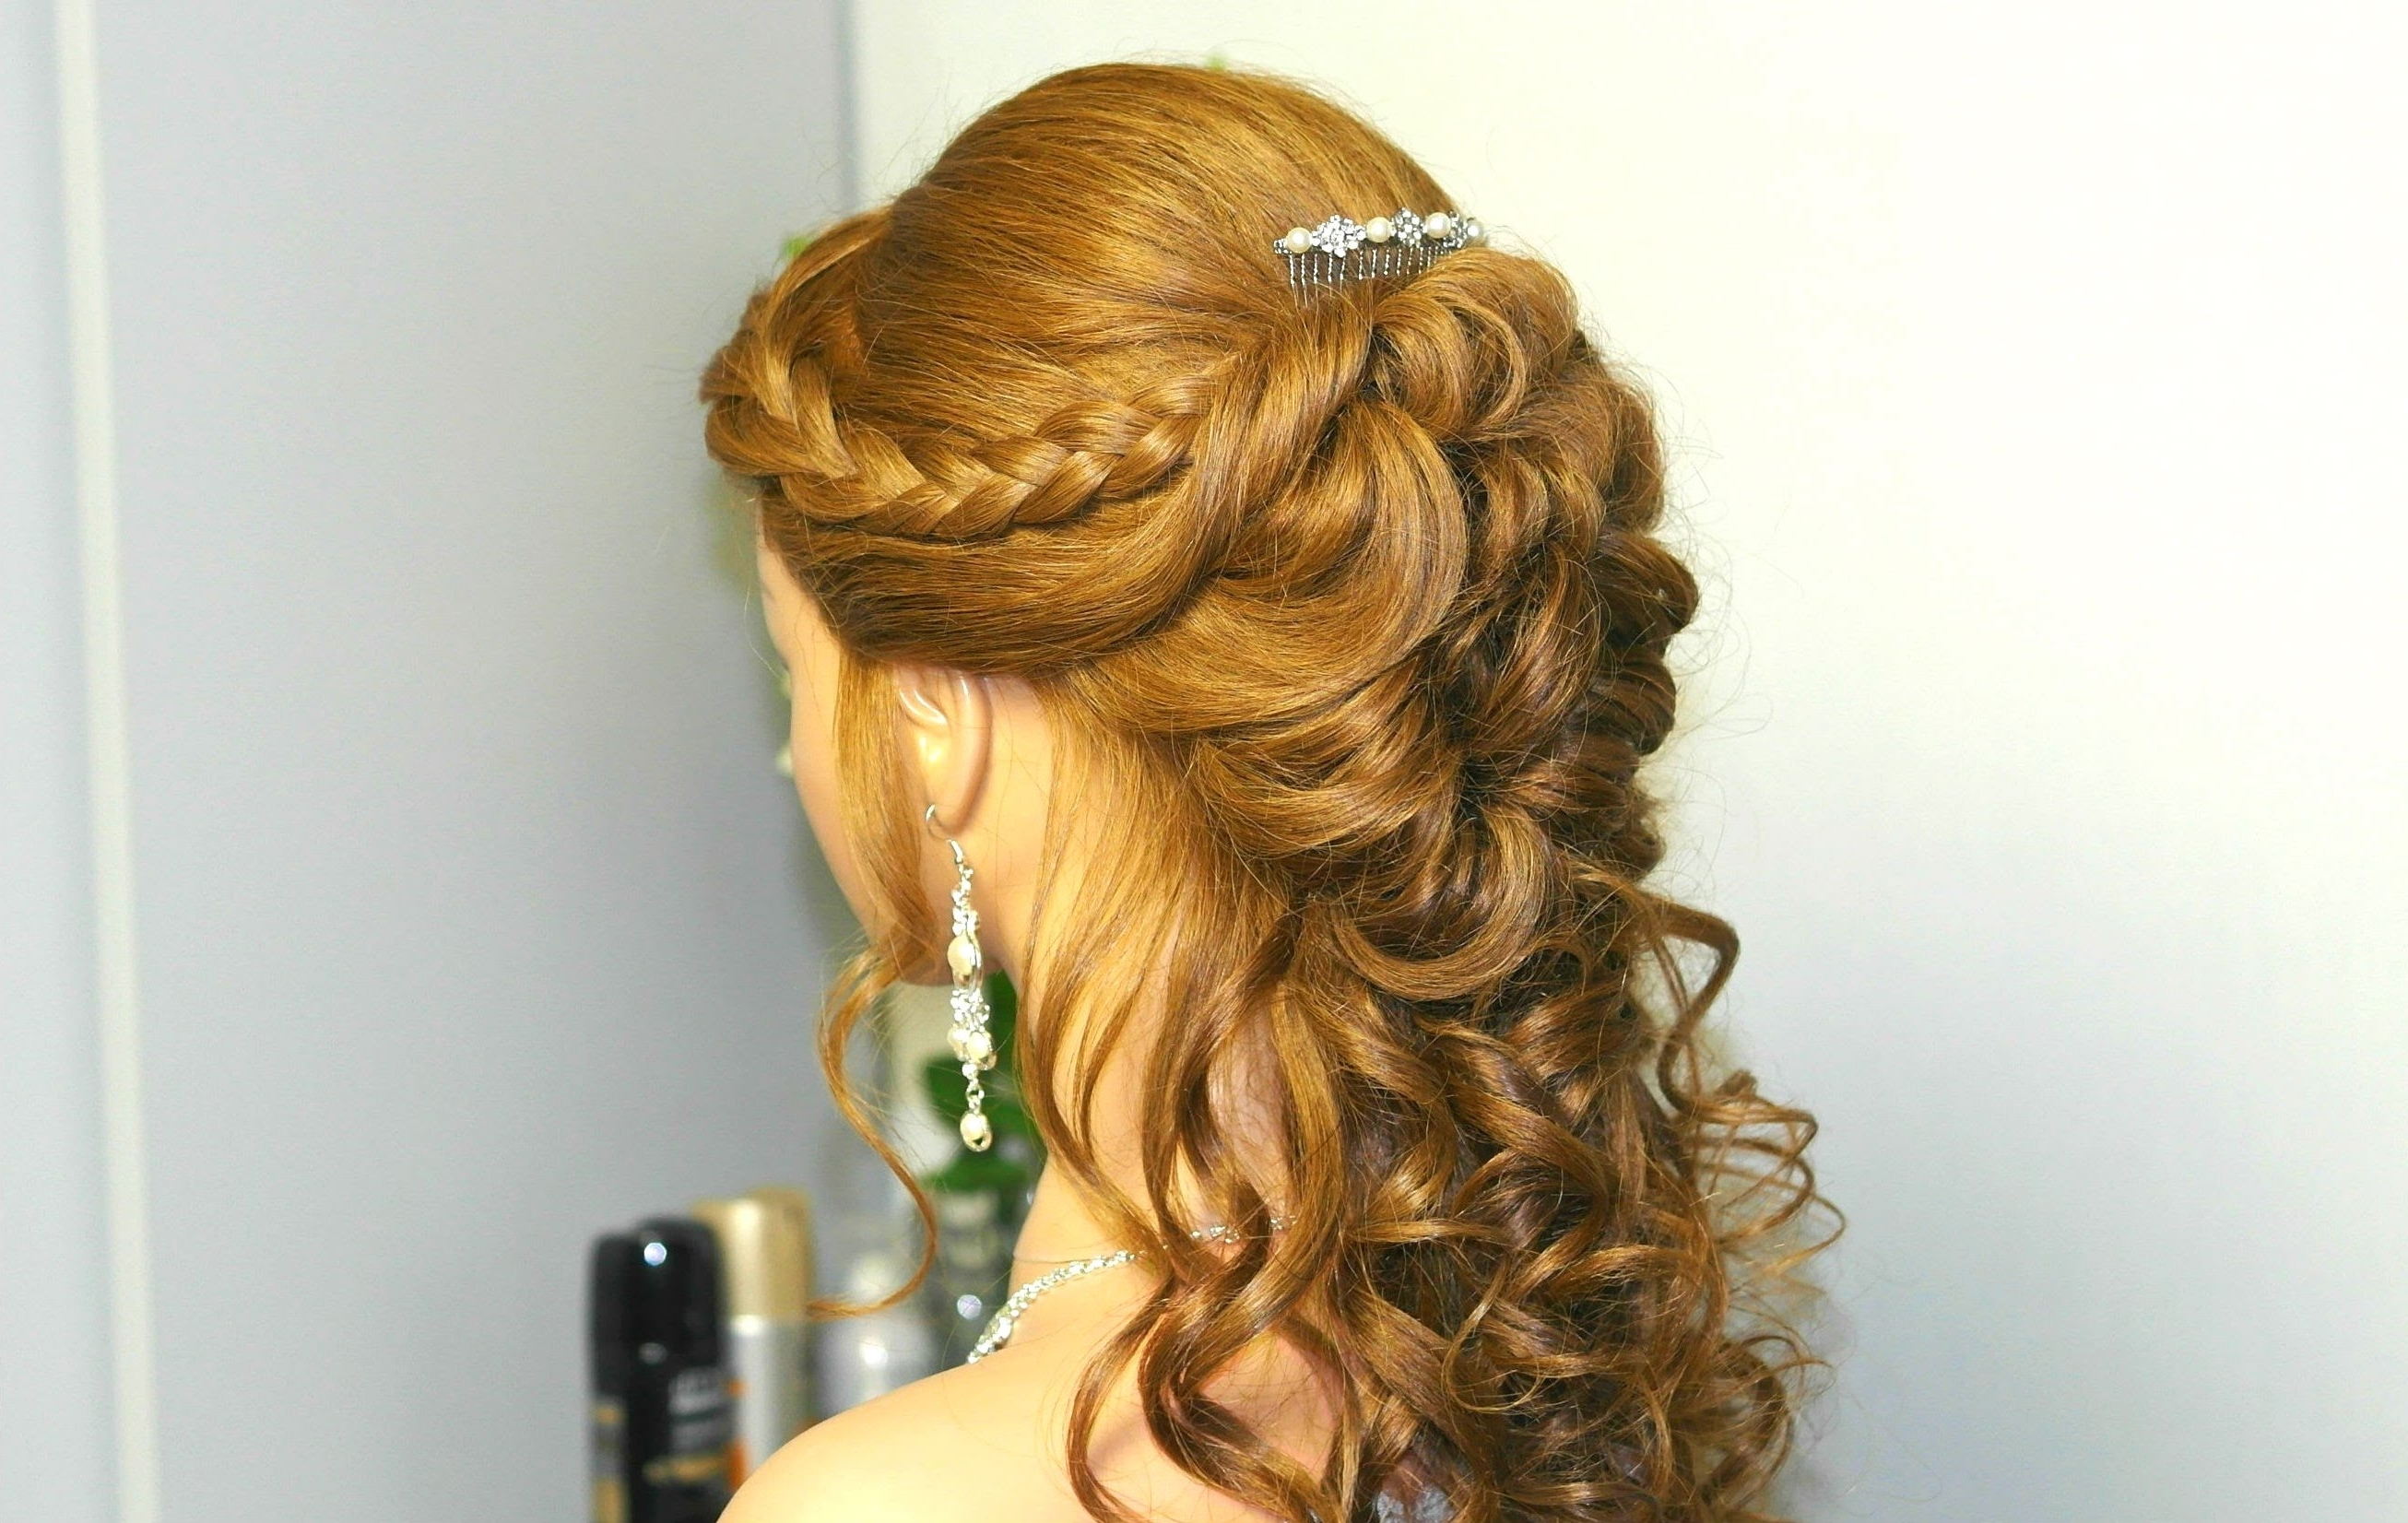 Well Liked French Braid Hairstyles With Curls Intended For Curly Prom Hairstyle For Long Hair With French Braids. Tutorial (Gallery 6 of 15)